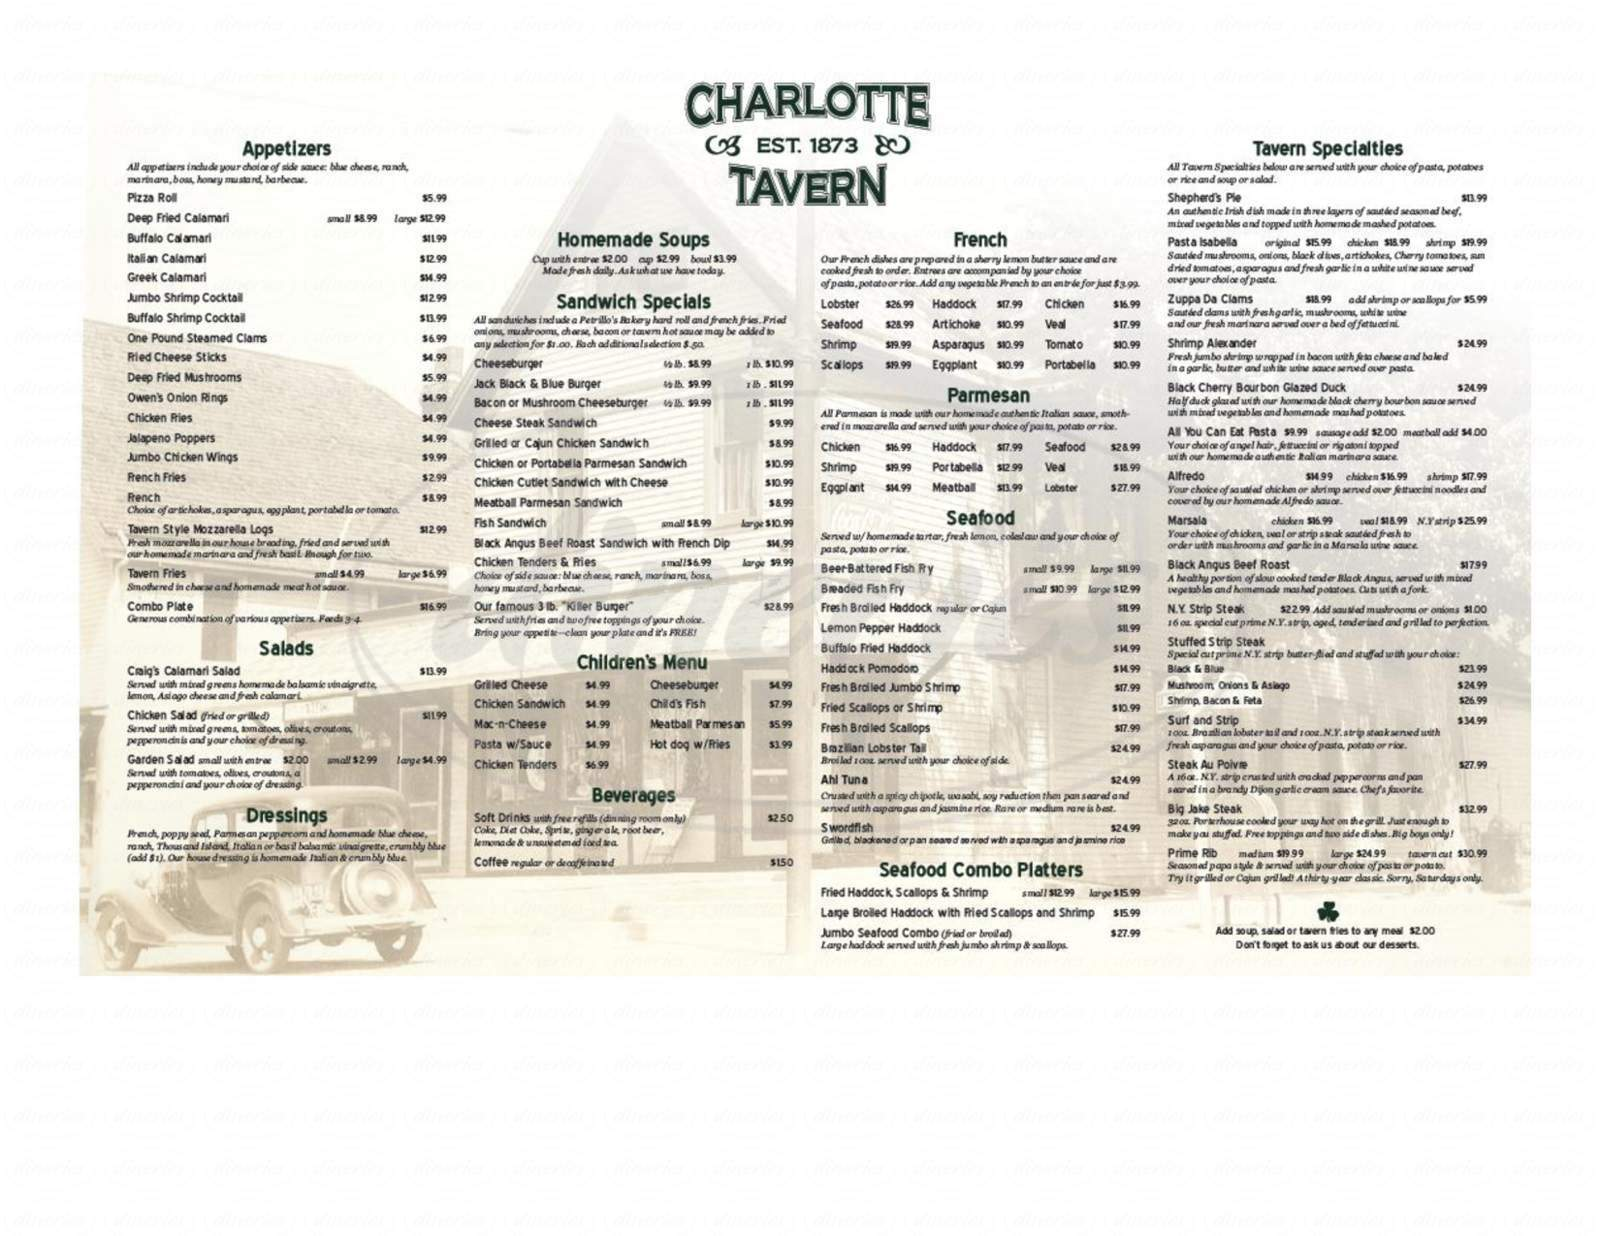 menu for Charlotte Tavern